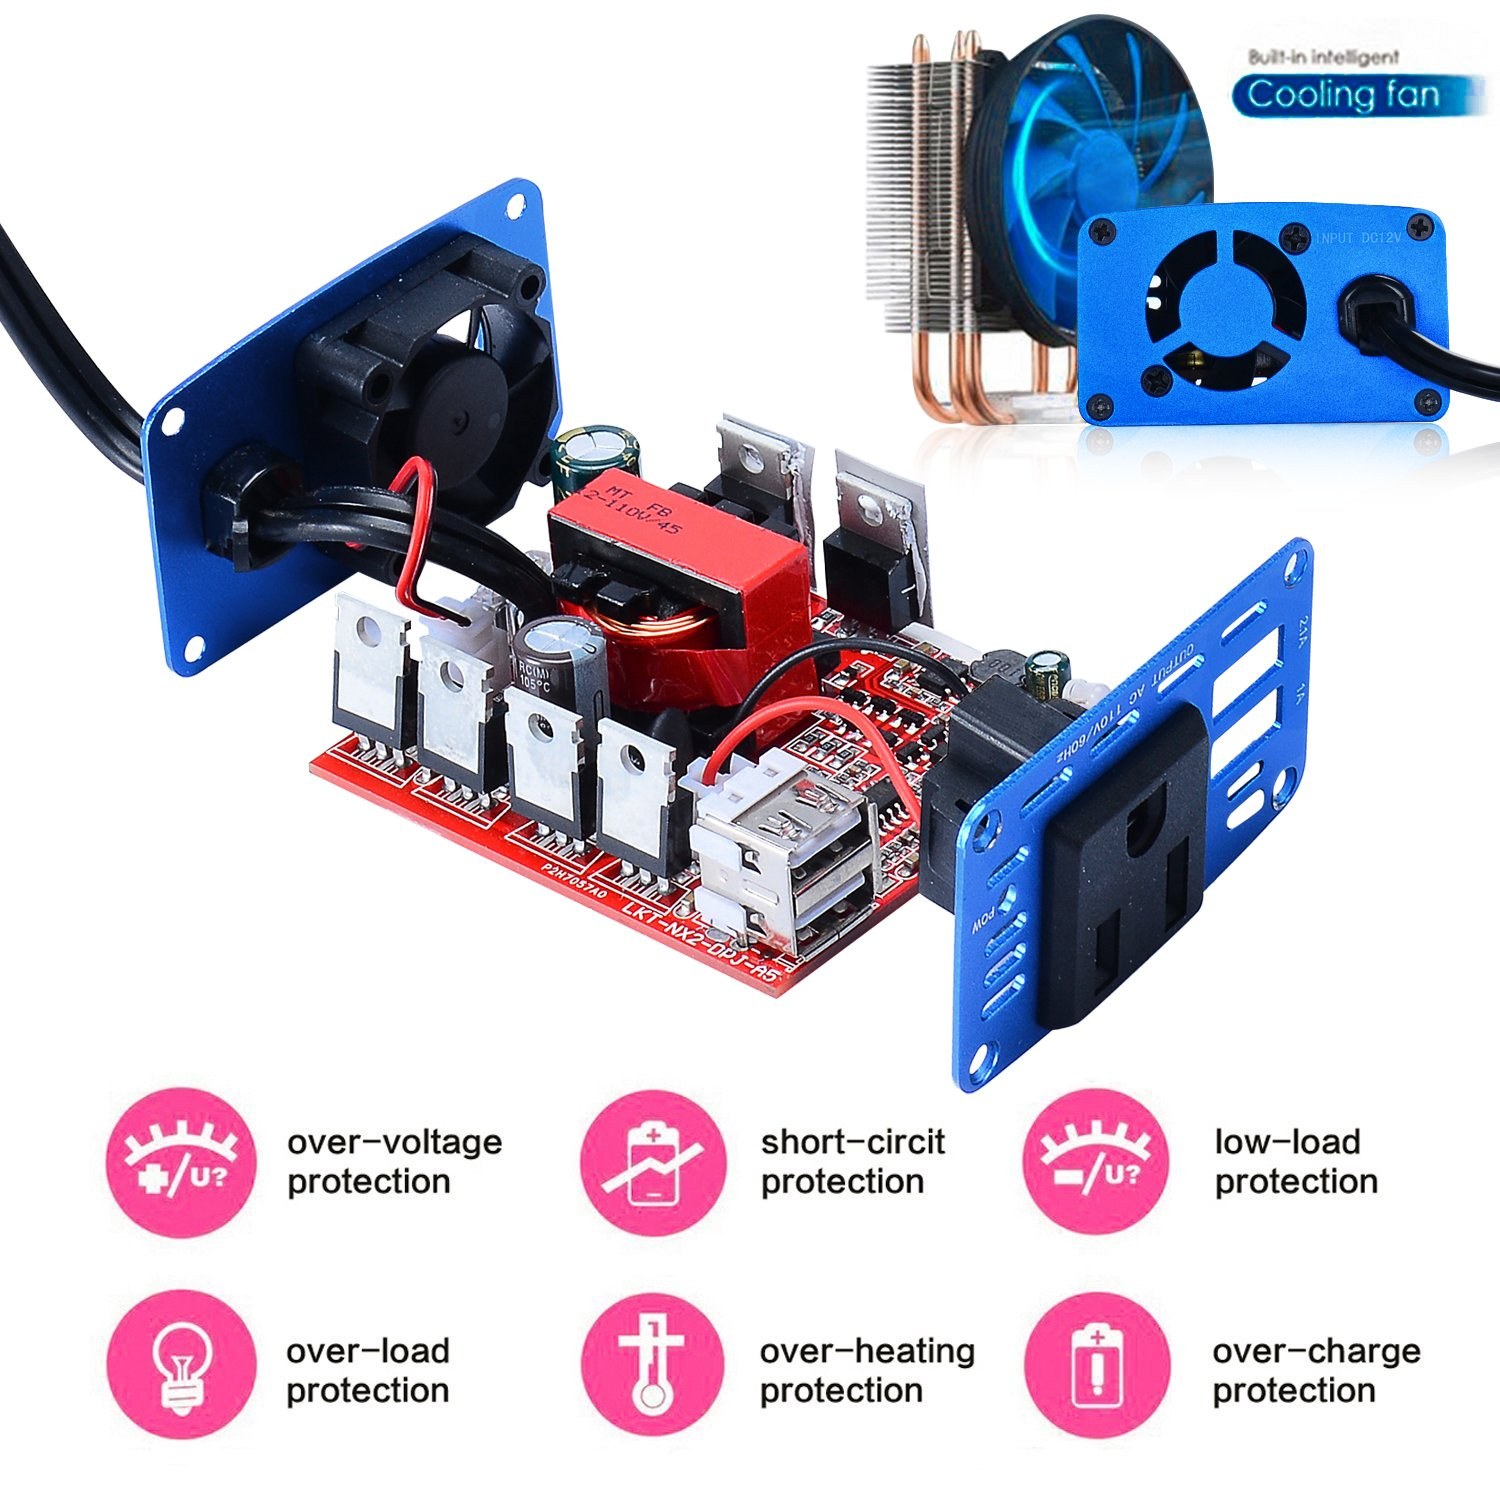 Enkey 150W Car Power Inverter DC 12V to 110V AC Converter with 3.1A Dual USB Charger - Blue by Enkey (Image #5)